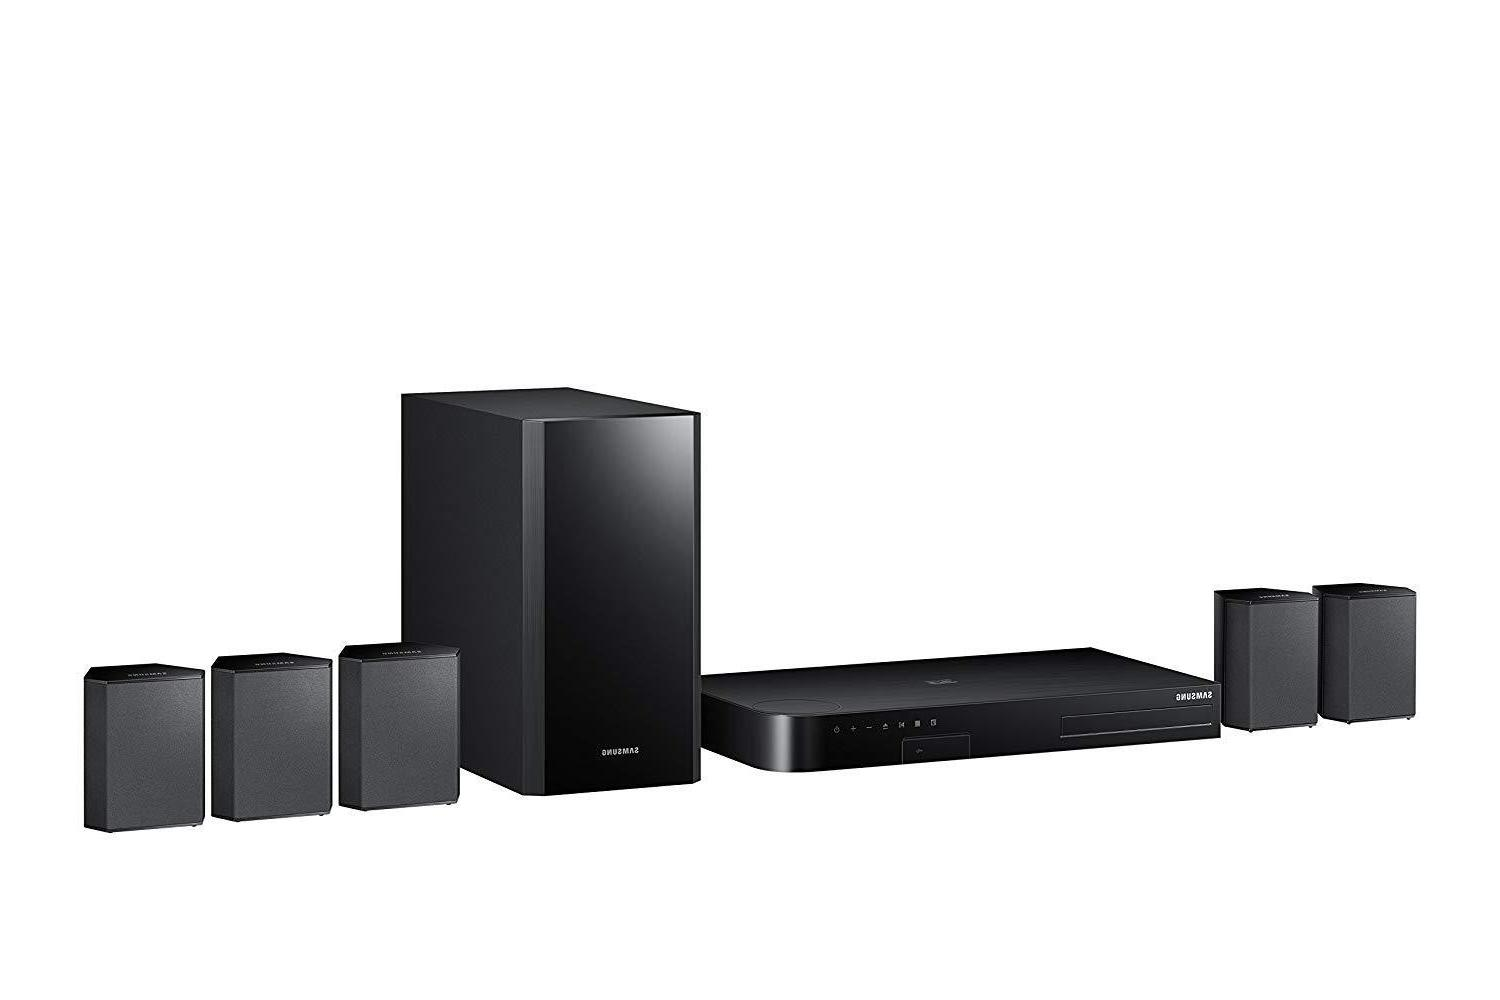 Samsung 5.1 Channel Home Theater System Surround Sound Blu-R